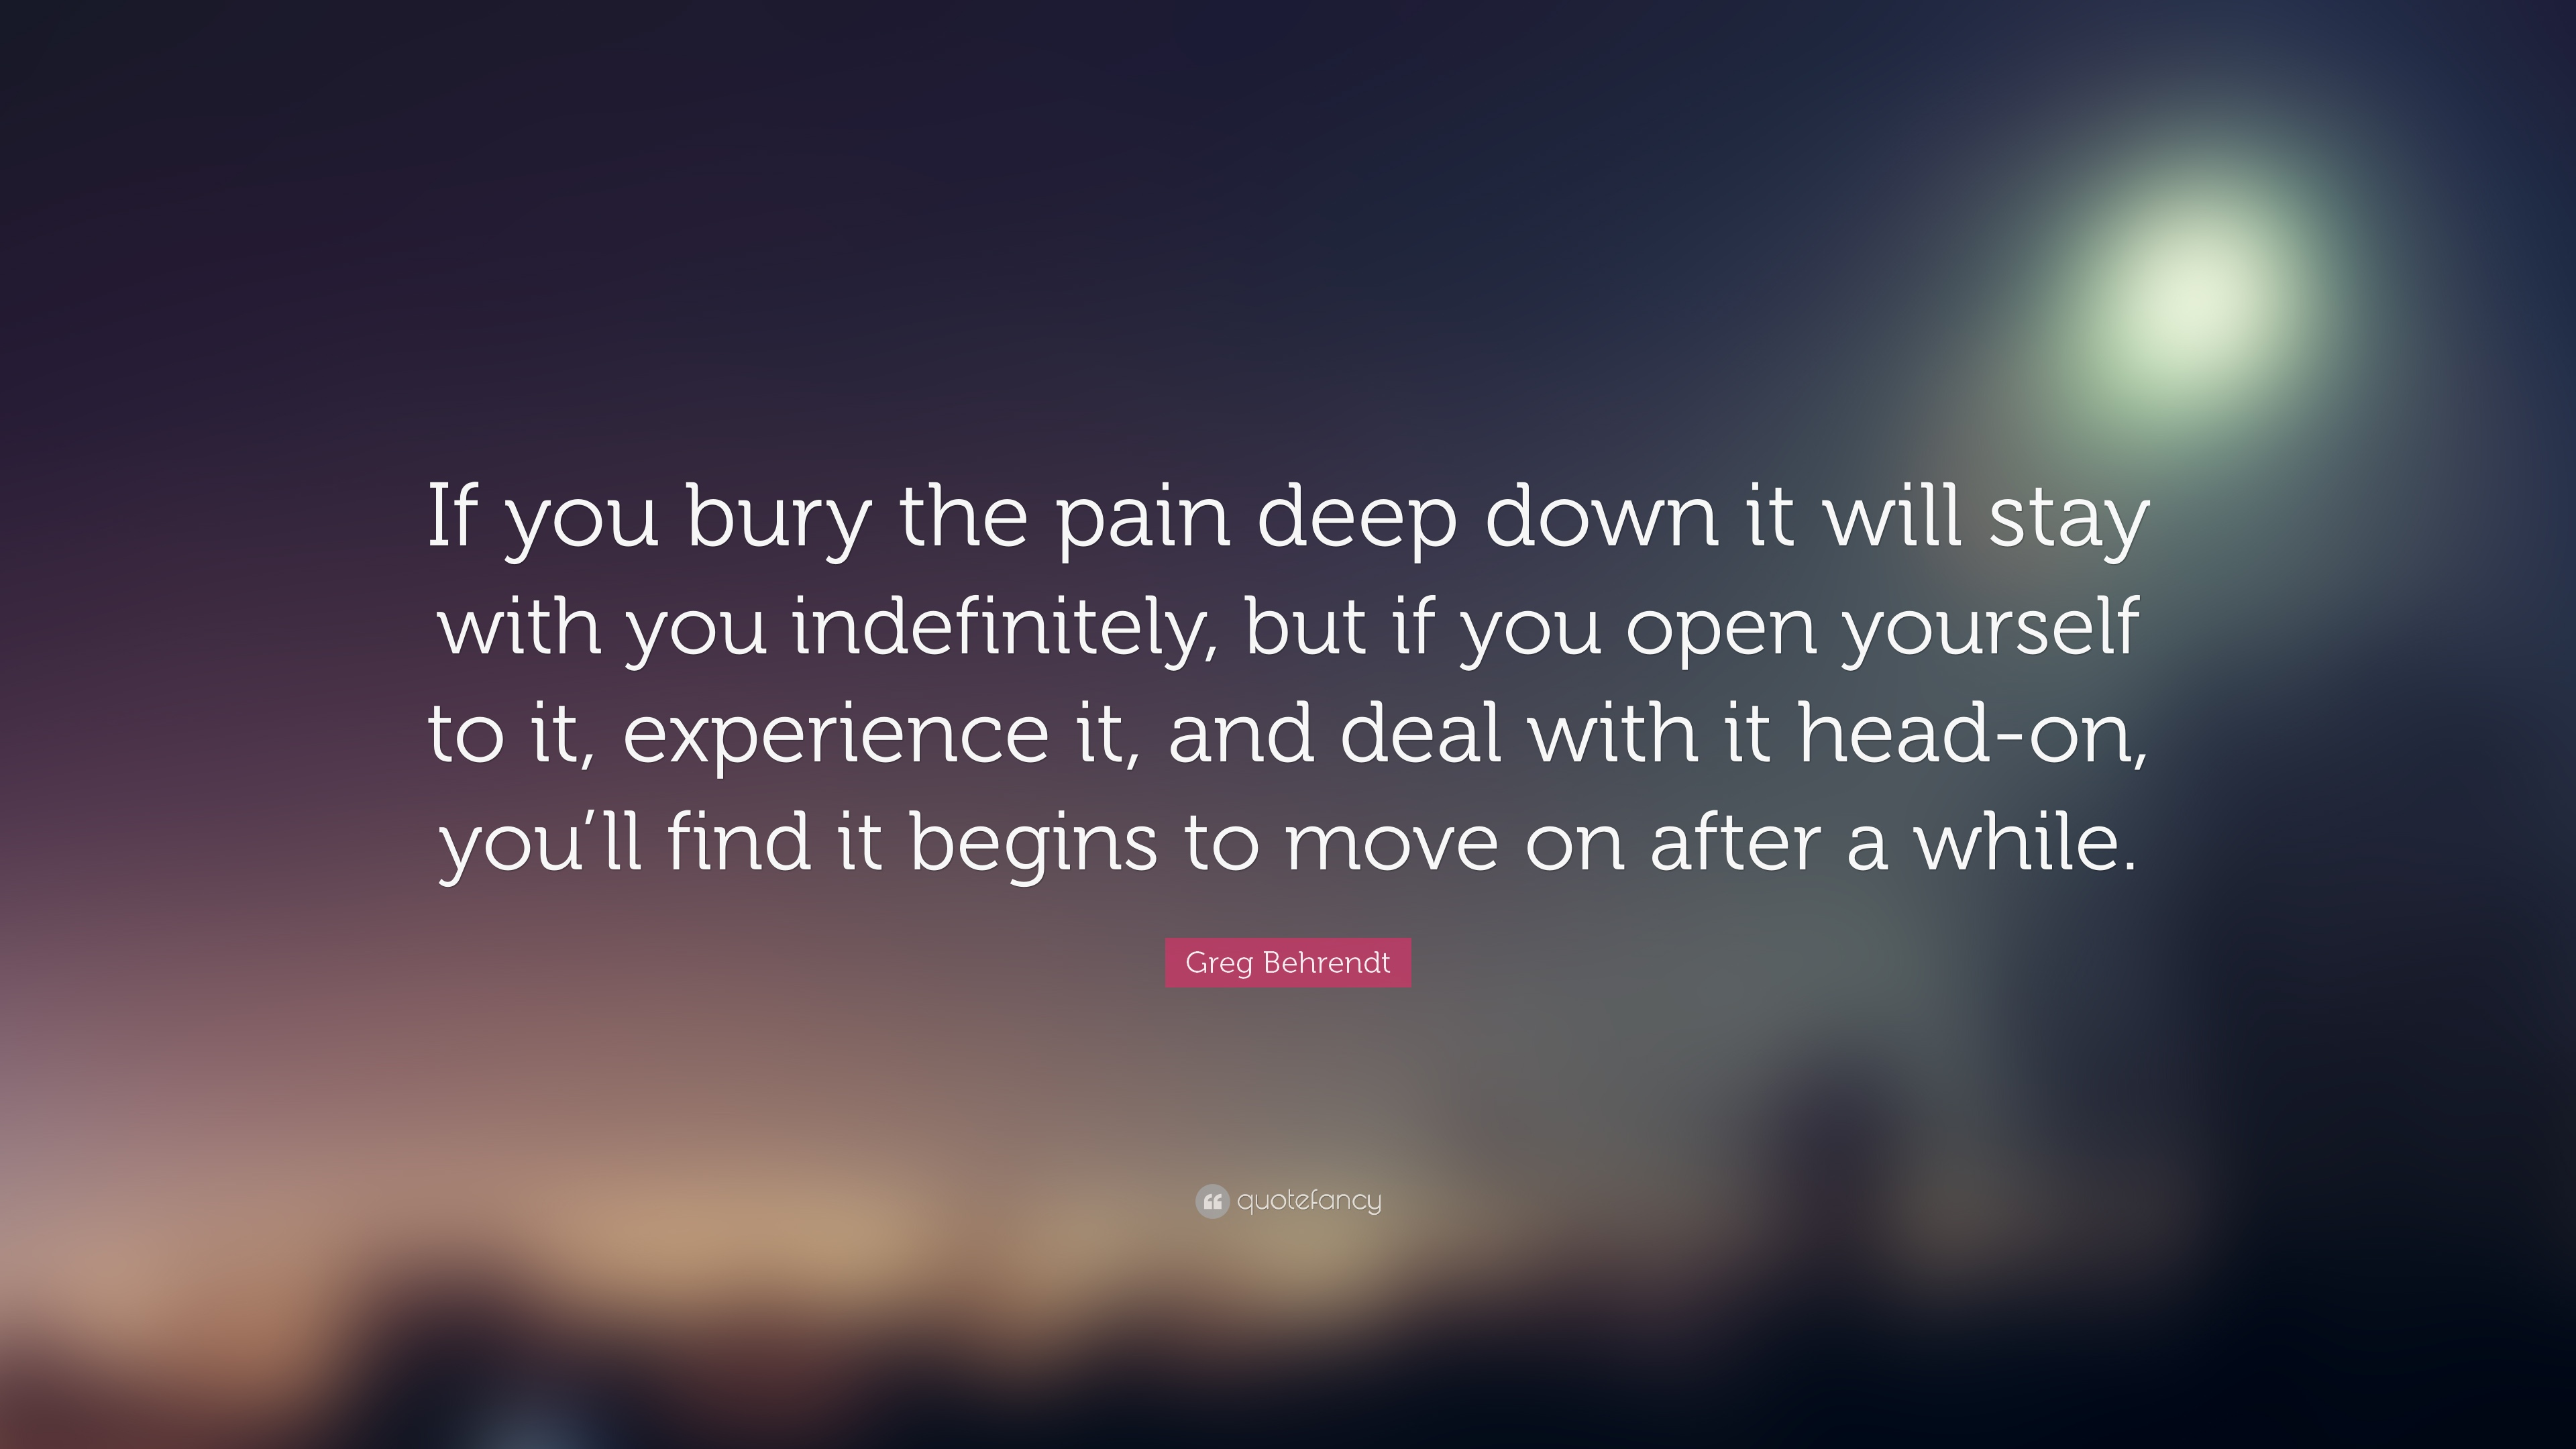 """Deep Quotes About Pain Greg Behrendt Quote: """"If you bury the pain deep down it will stay  Deep Quotes About Pain"""